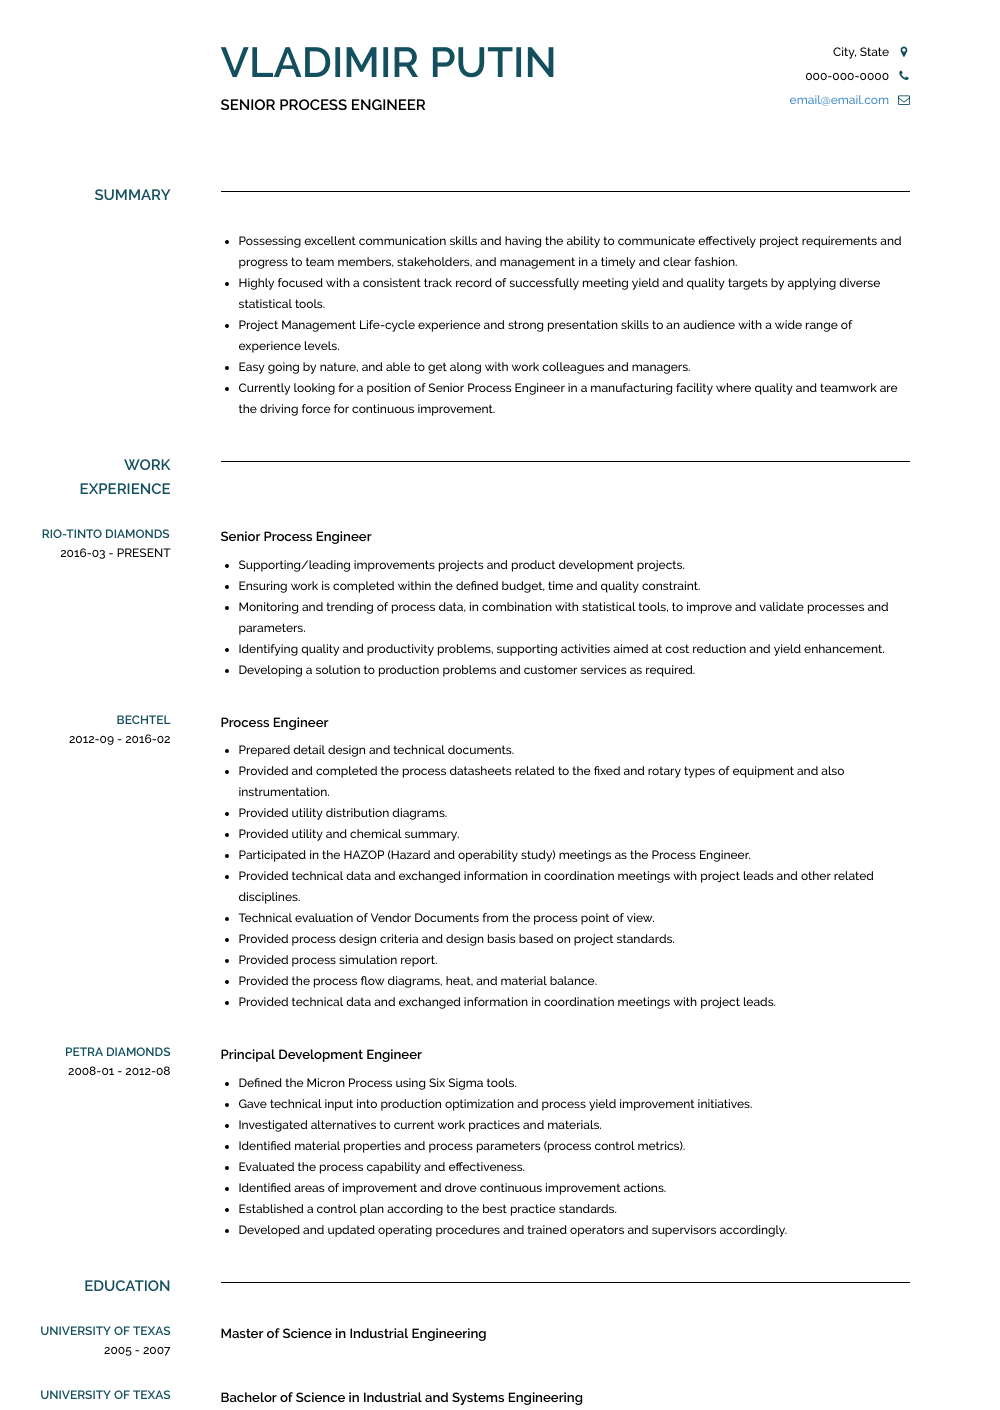 Senior Process Engineer Resume Sample and Template